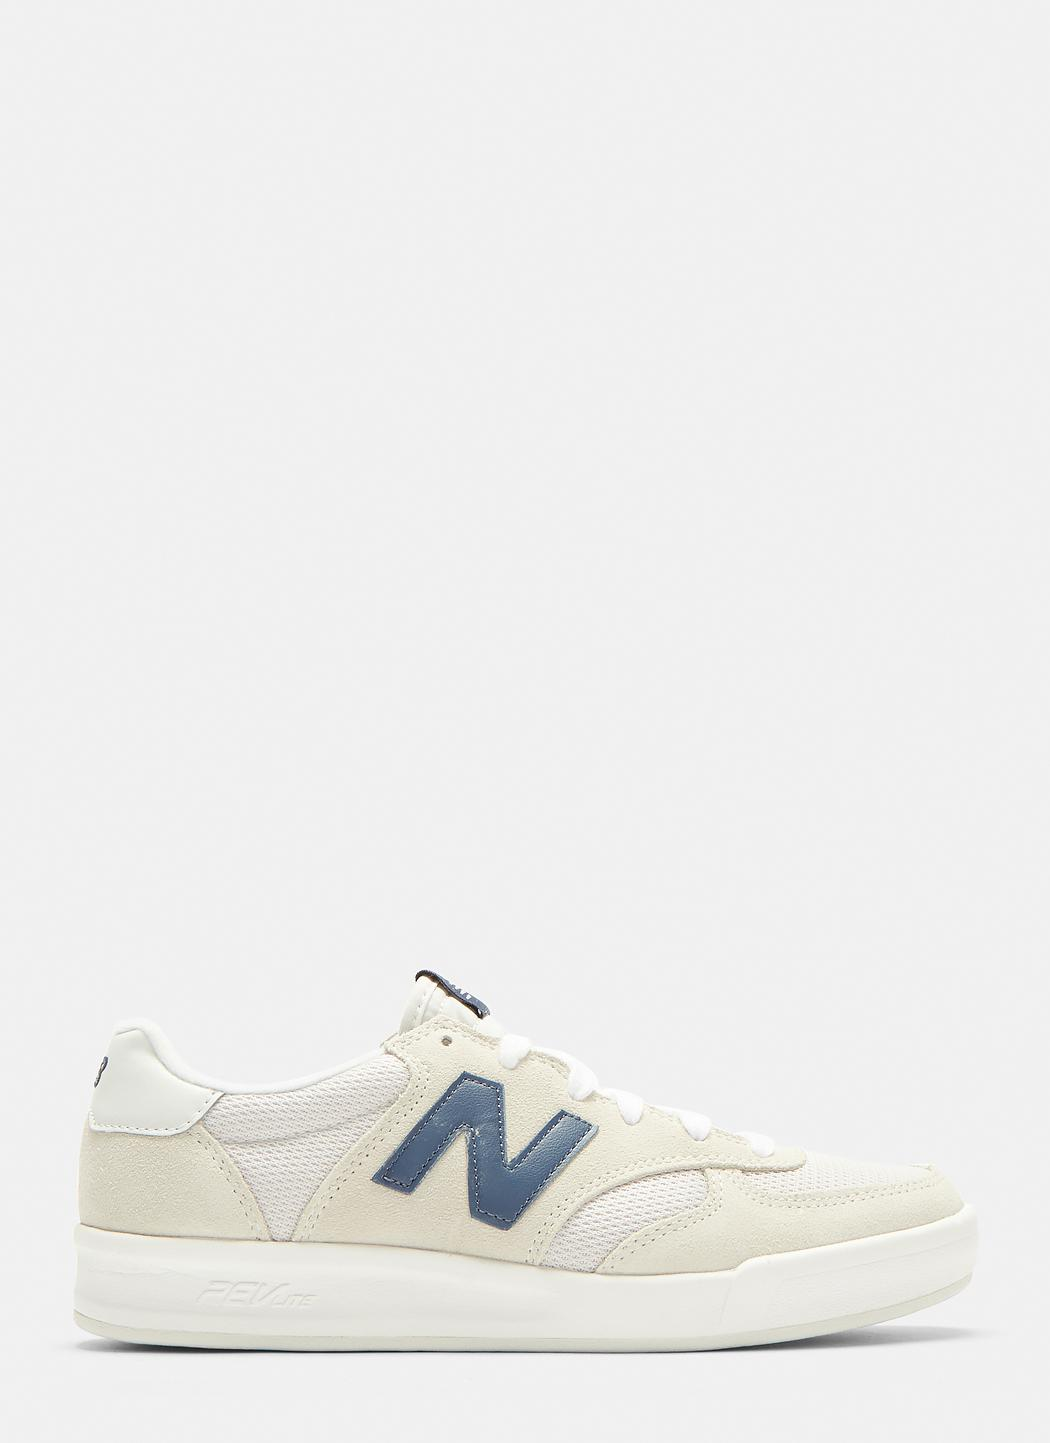 87115ba1ca6ac New Balance 300 Suede And Nylon Court Sneakers In White in White - Lyst